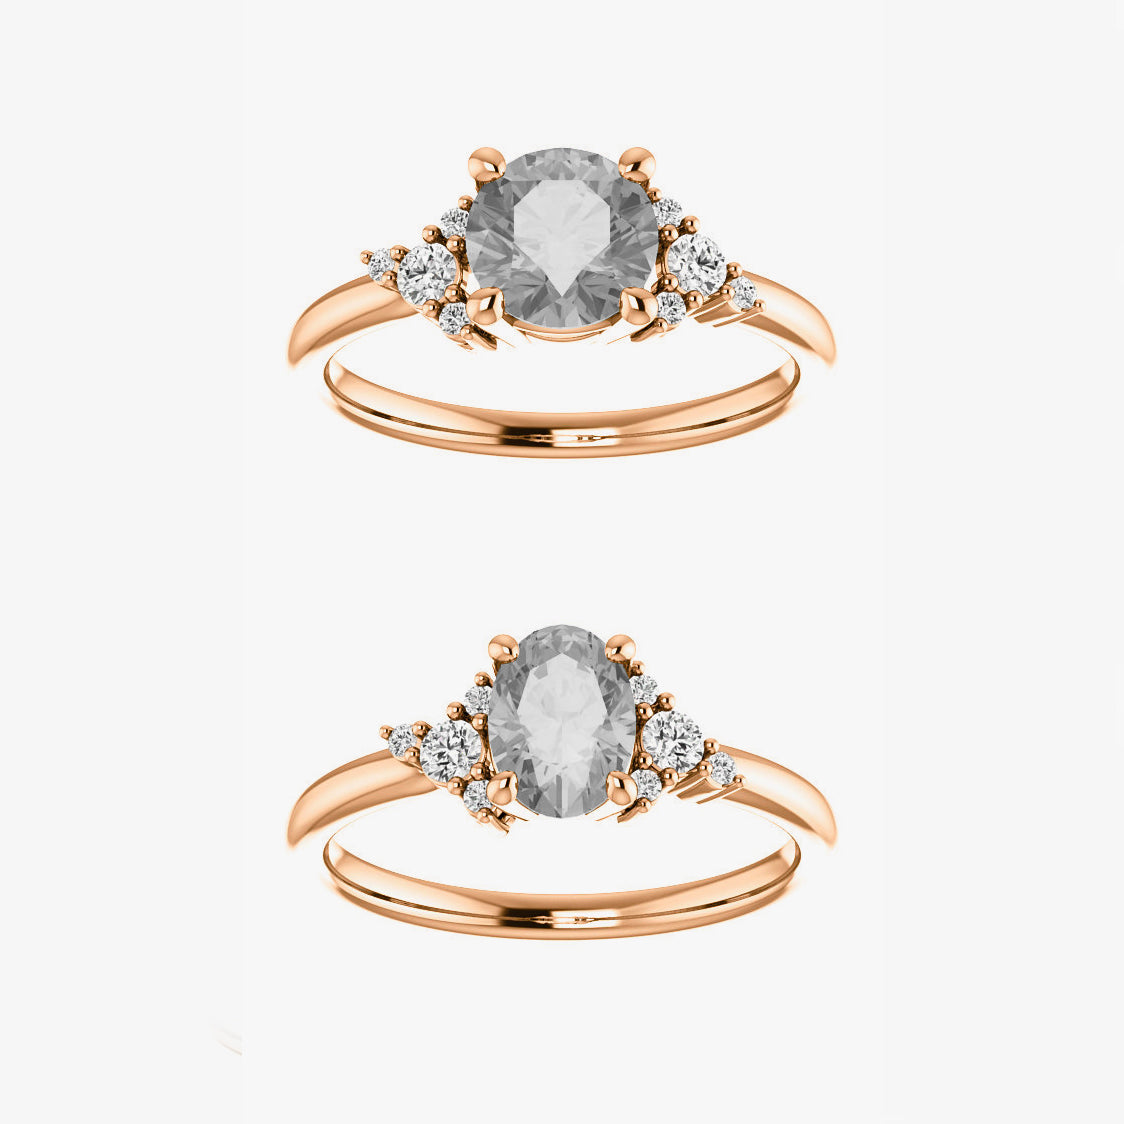 Marley Setting - Celestial Diamonds ® by Midwinter Co.